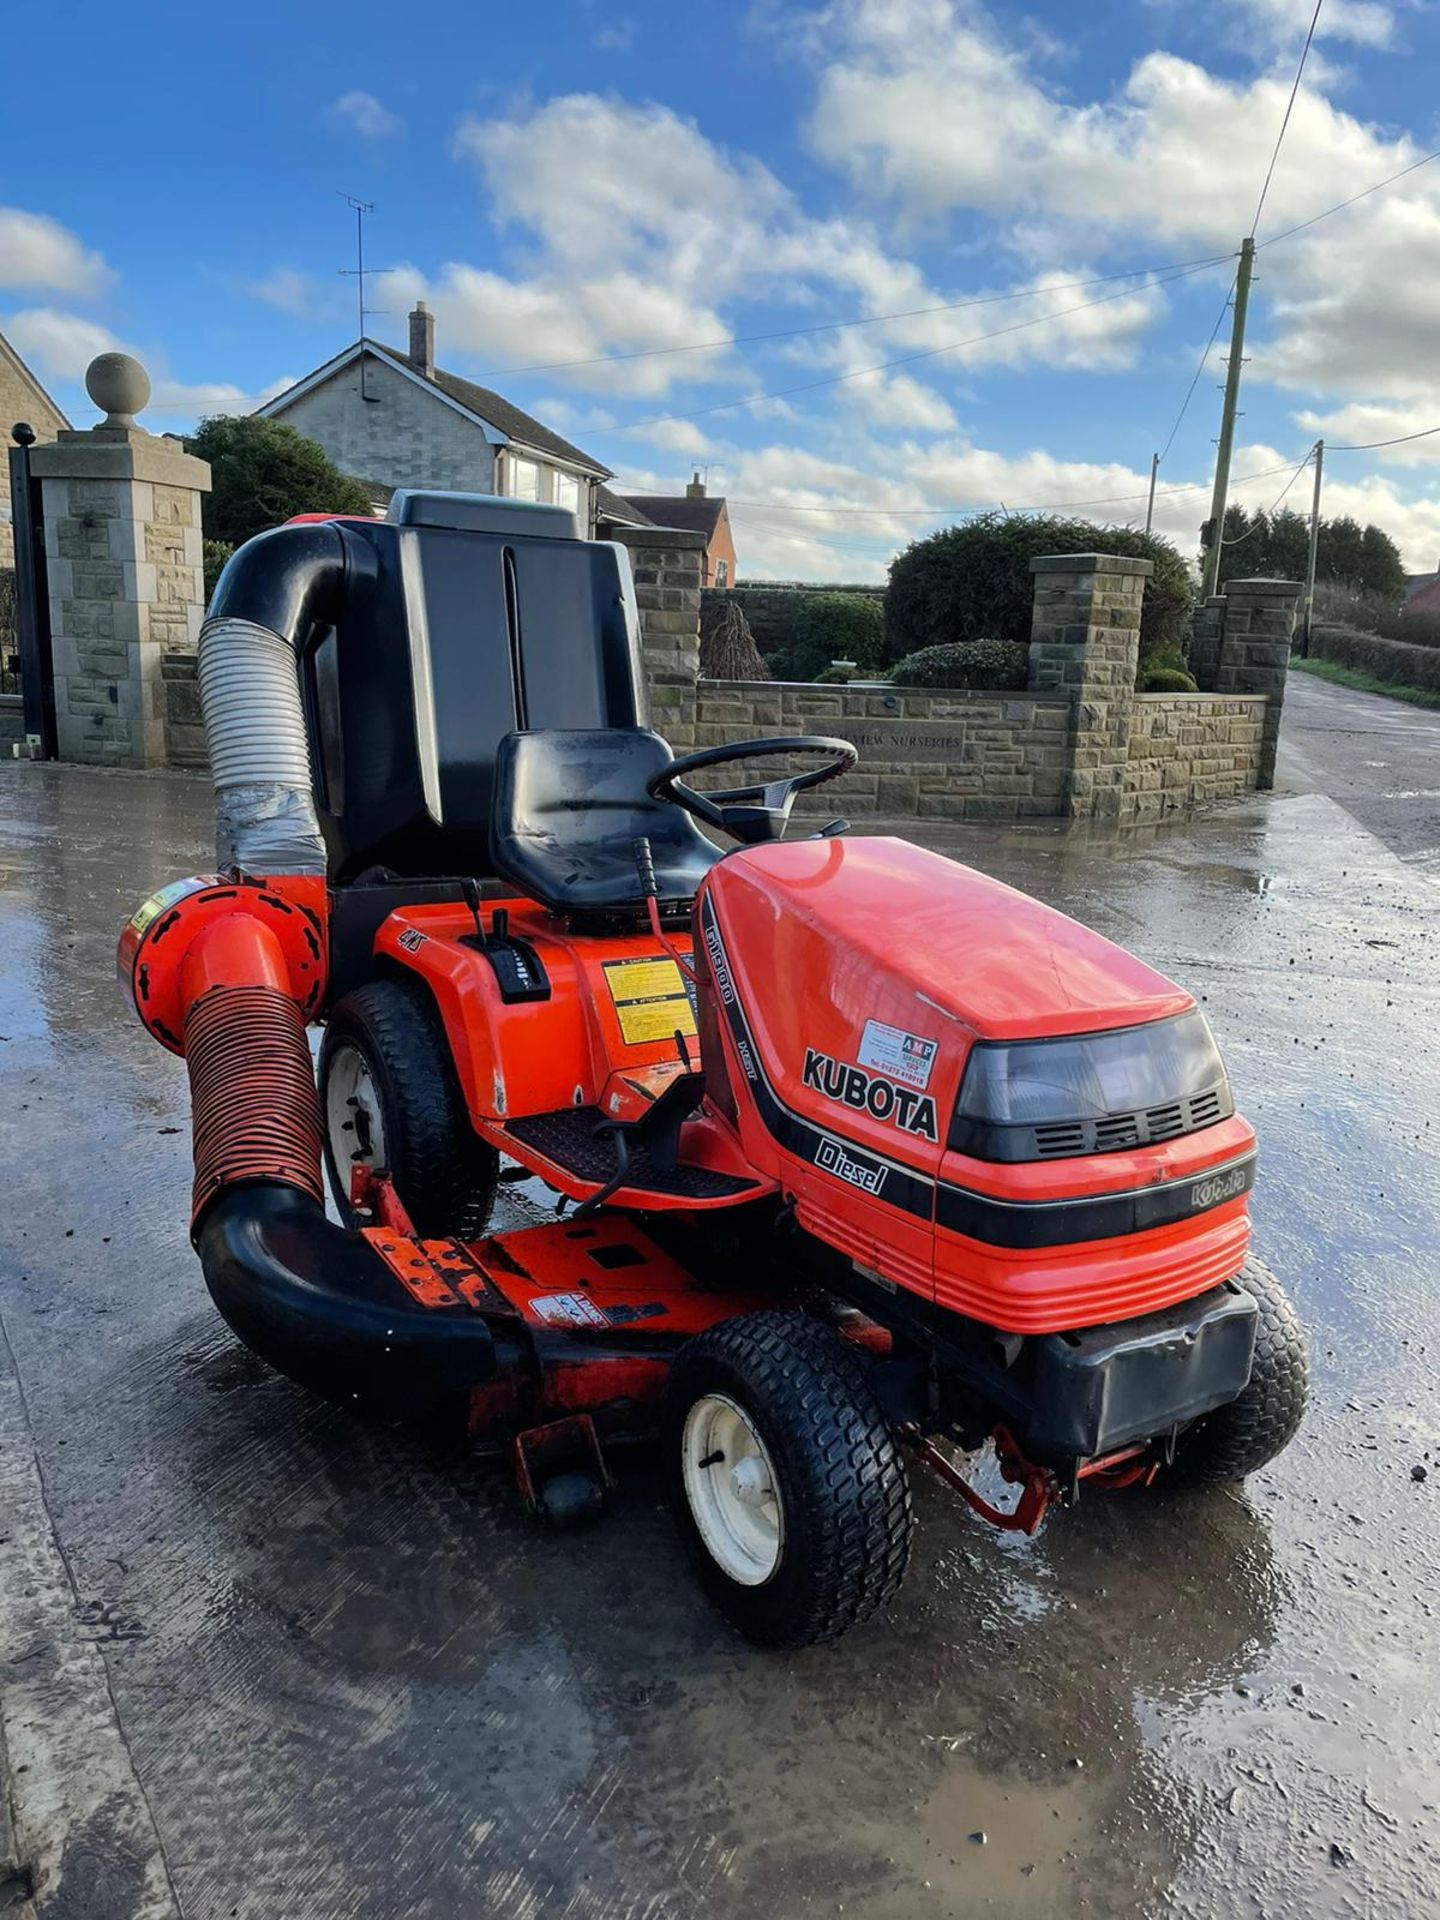 KUBOTA G1900 HST 4WS RIDE ON MOWER WITH COLLECTOR, RUNS, DRIVES AND CUTS, DIESEL ENGINE *NO VAT* - Image 2 of 7